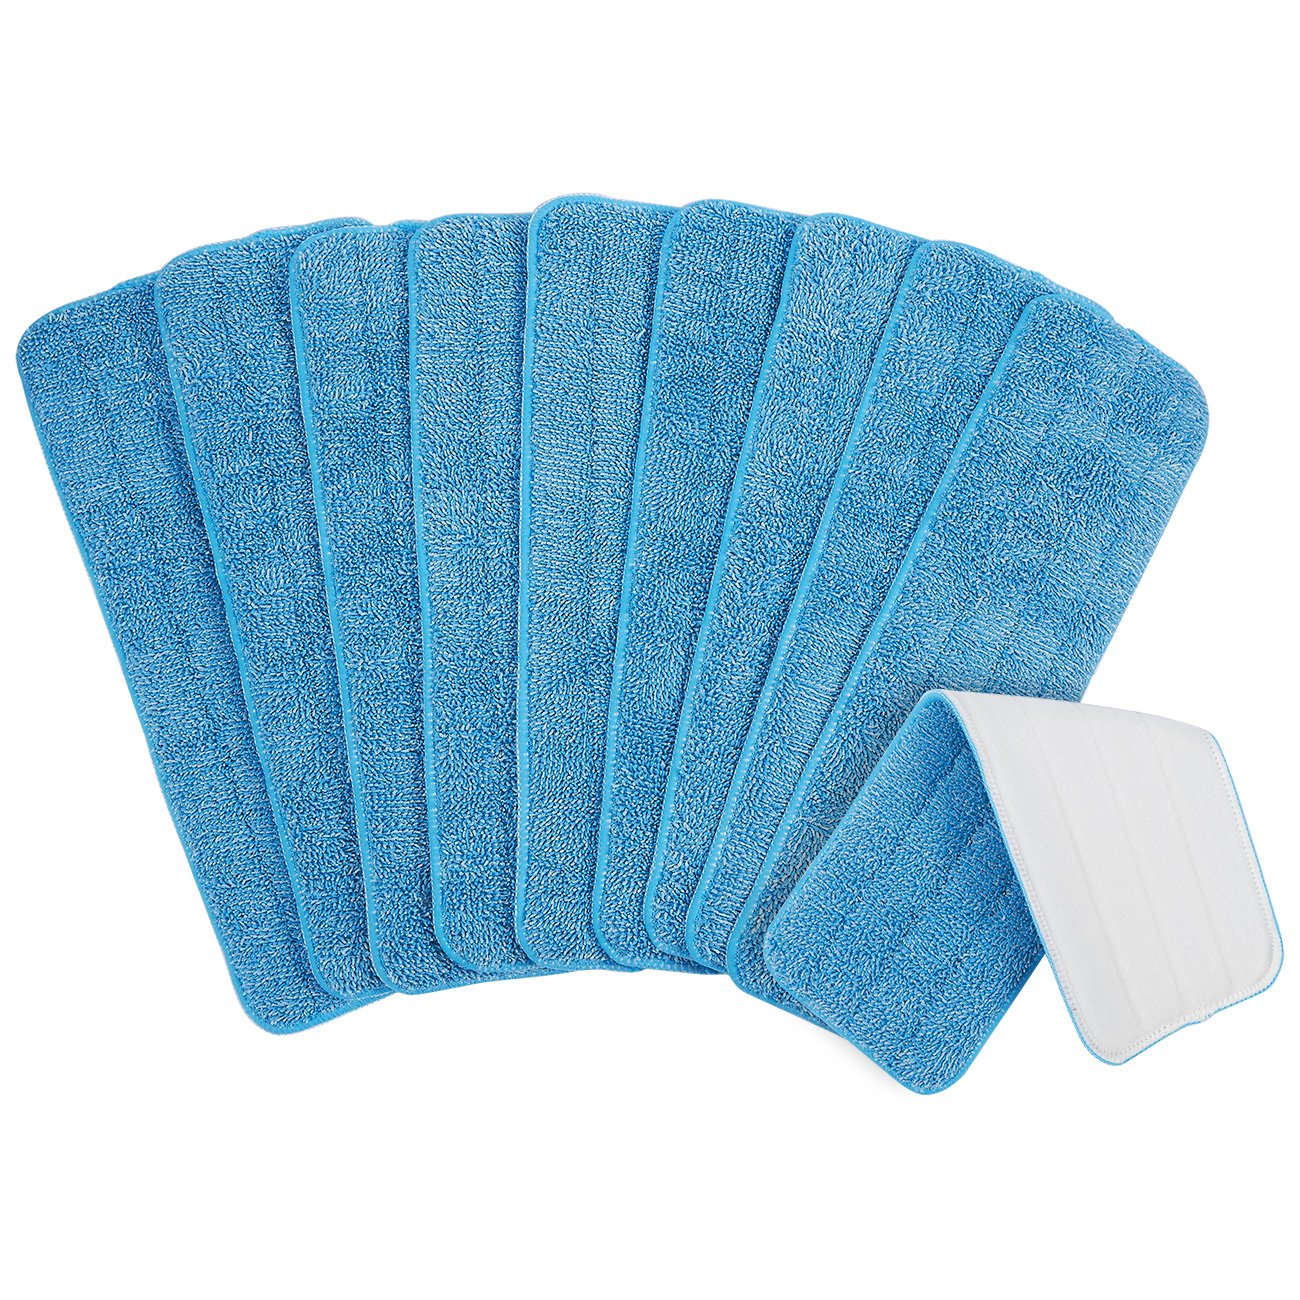 Pack of 10 Microfiber Mop Pads - Reusable Floor Mop Pads - Suitable for Hook and Loop Mop Heads, 16.5 x 0.25 x 5.38 Inches, Blue by Juvale